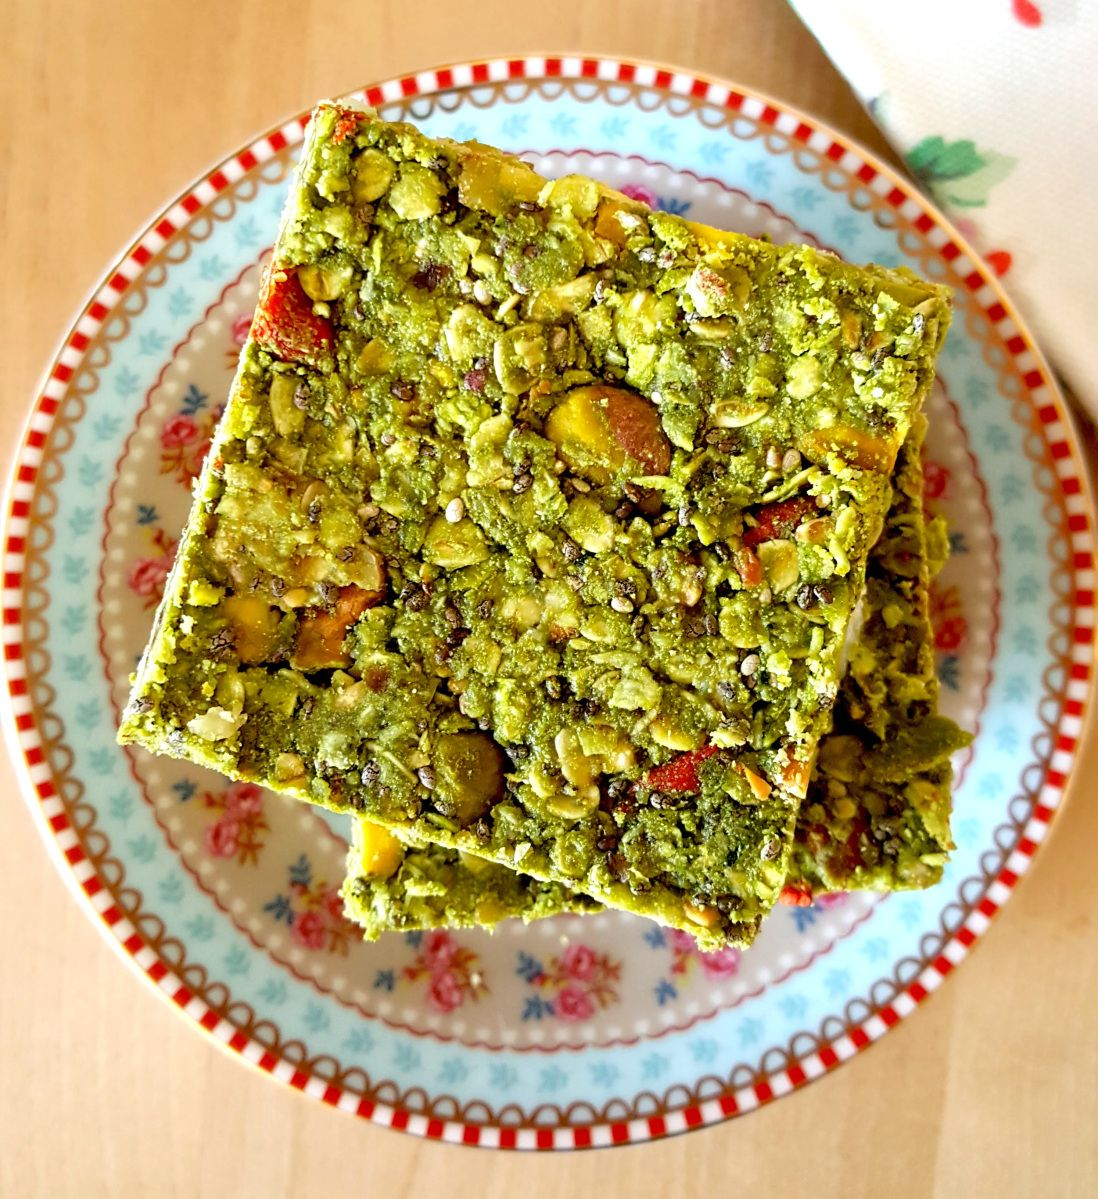 Have you tried green tea in these raw oat bars? Delicious and no bake!  #chia #EatWellLiveWell #HealthyFood #HealthyConsciousLiving #yummy #food #greentea #matcha  #recipeblogger